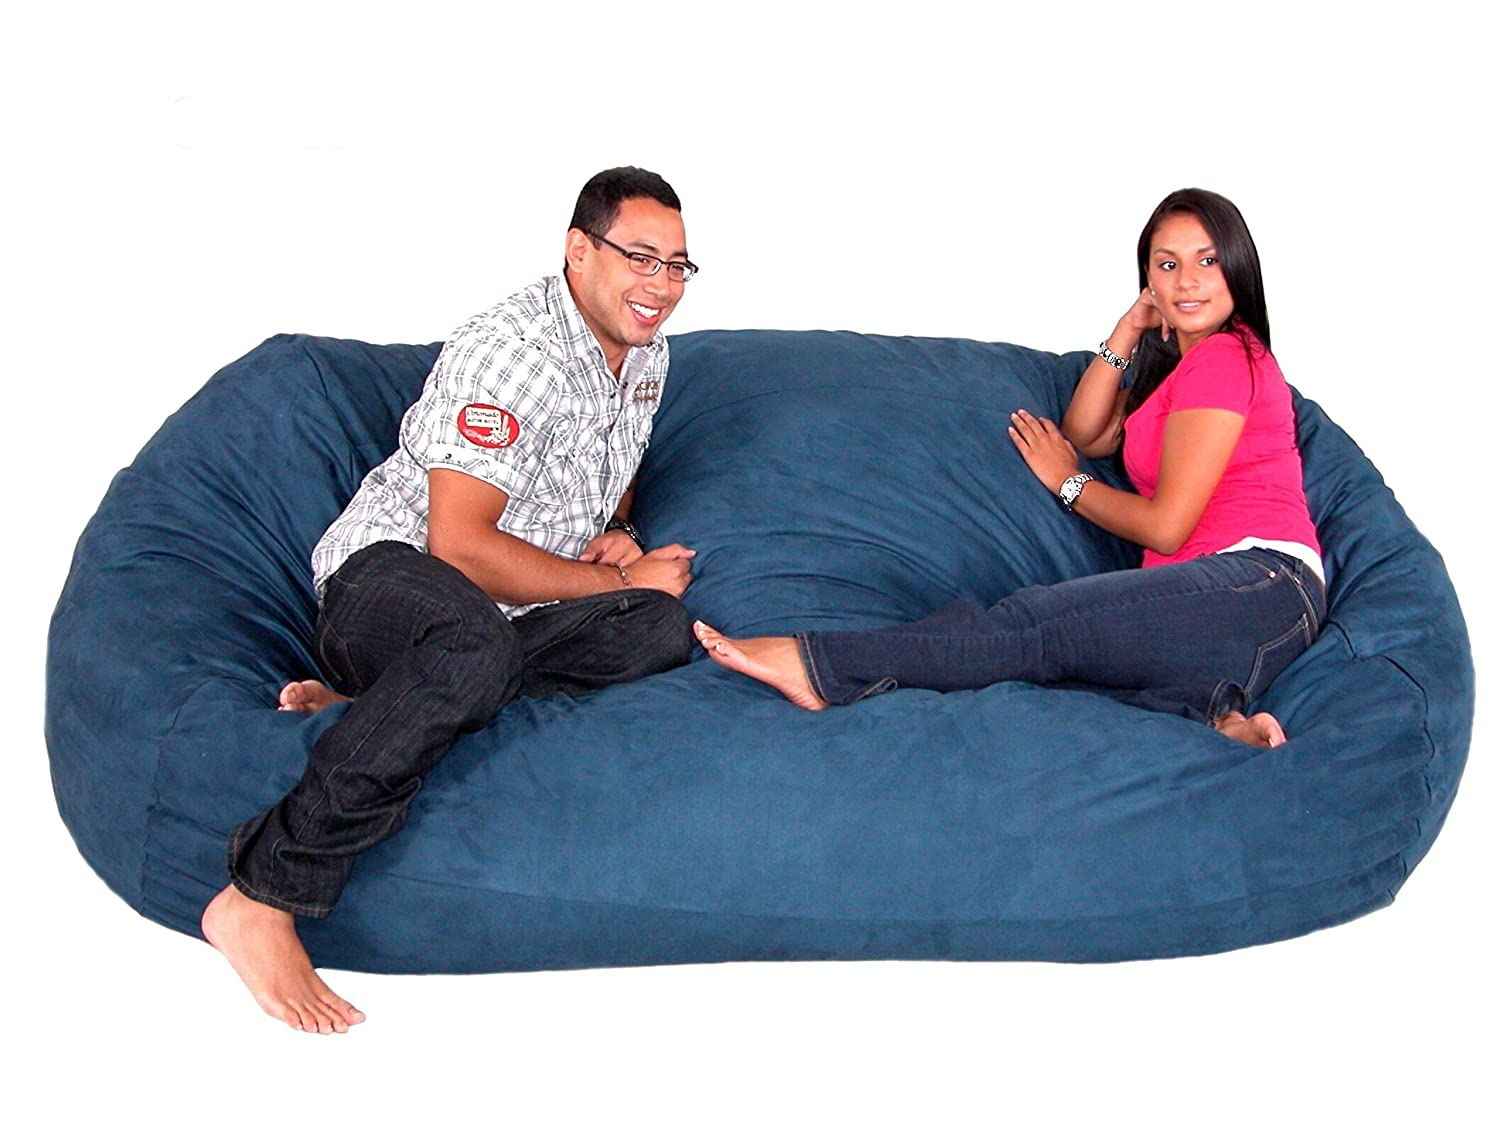 Cozy Sack 8-Feet Bean Bag Chair, X-Large, Navy